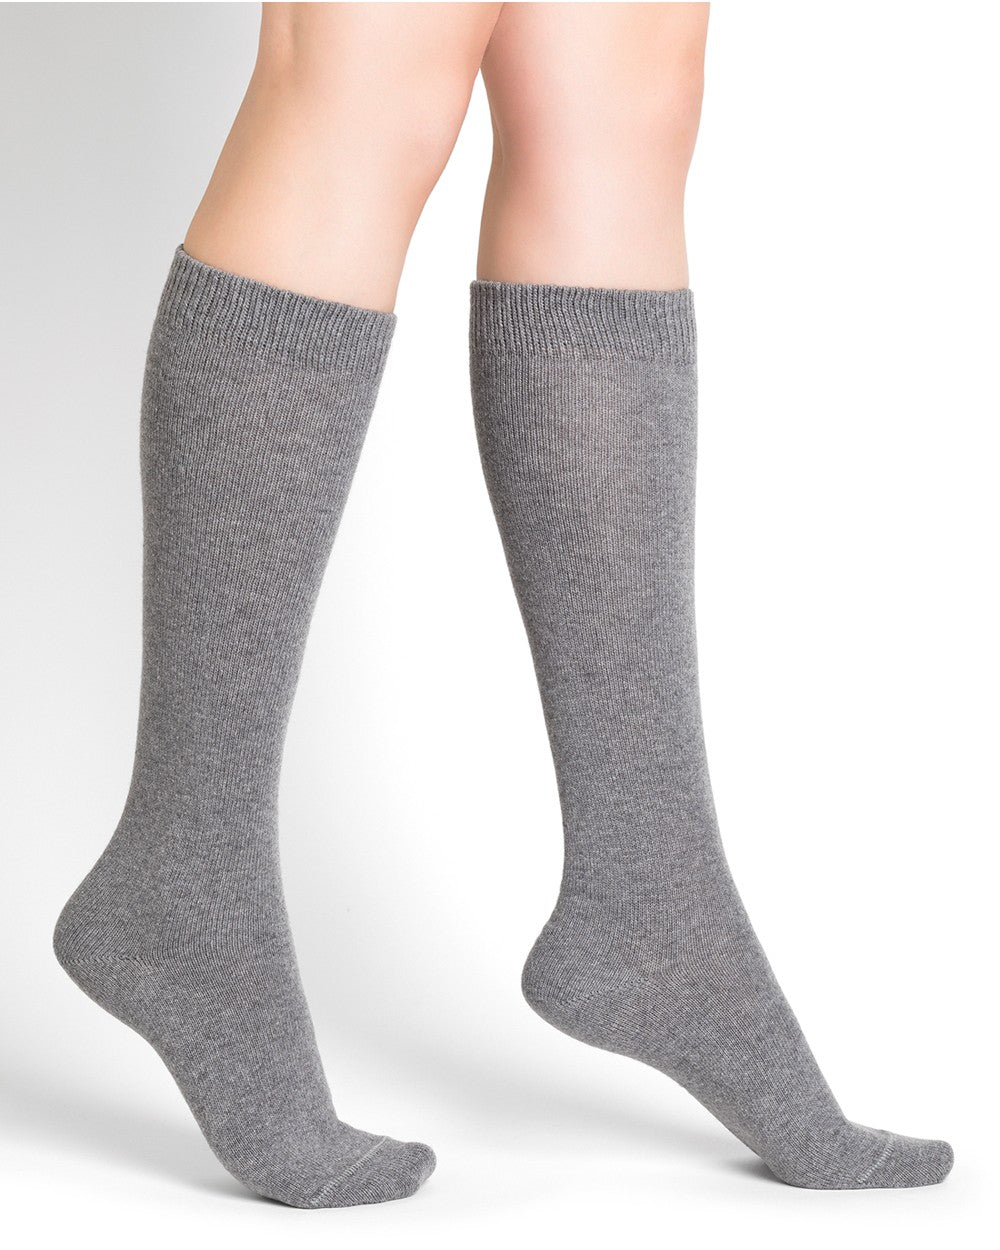 Bleuforêt Knee High Cashmere Socks 6198